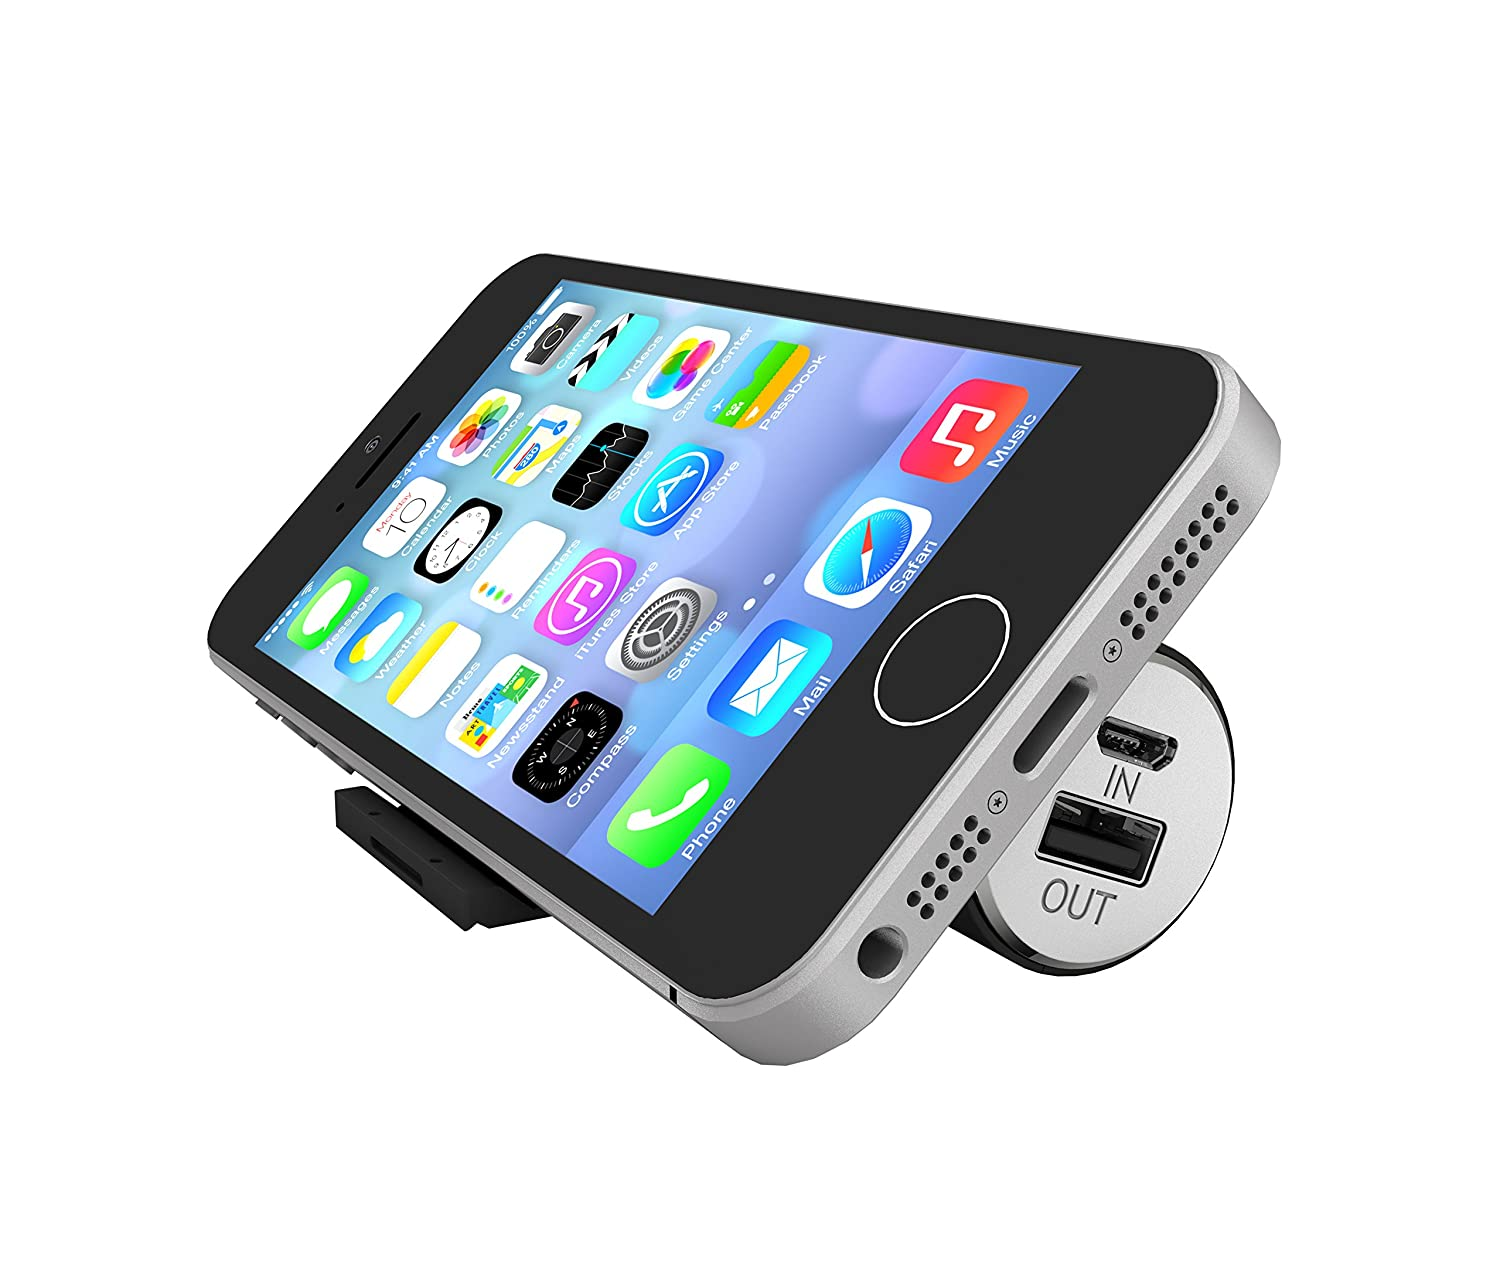 Smartphones and more Provide on-the-go charging for your Tablets Energizer UE2601 2600mAh Portable Charger